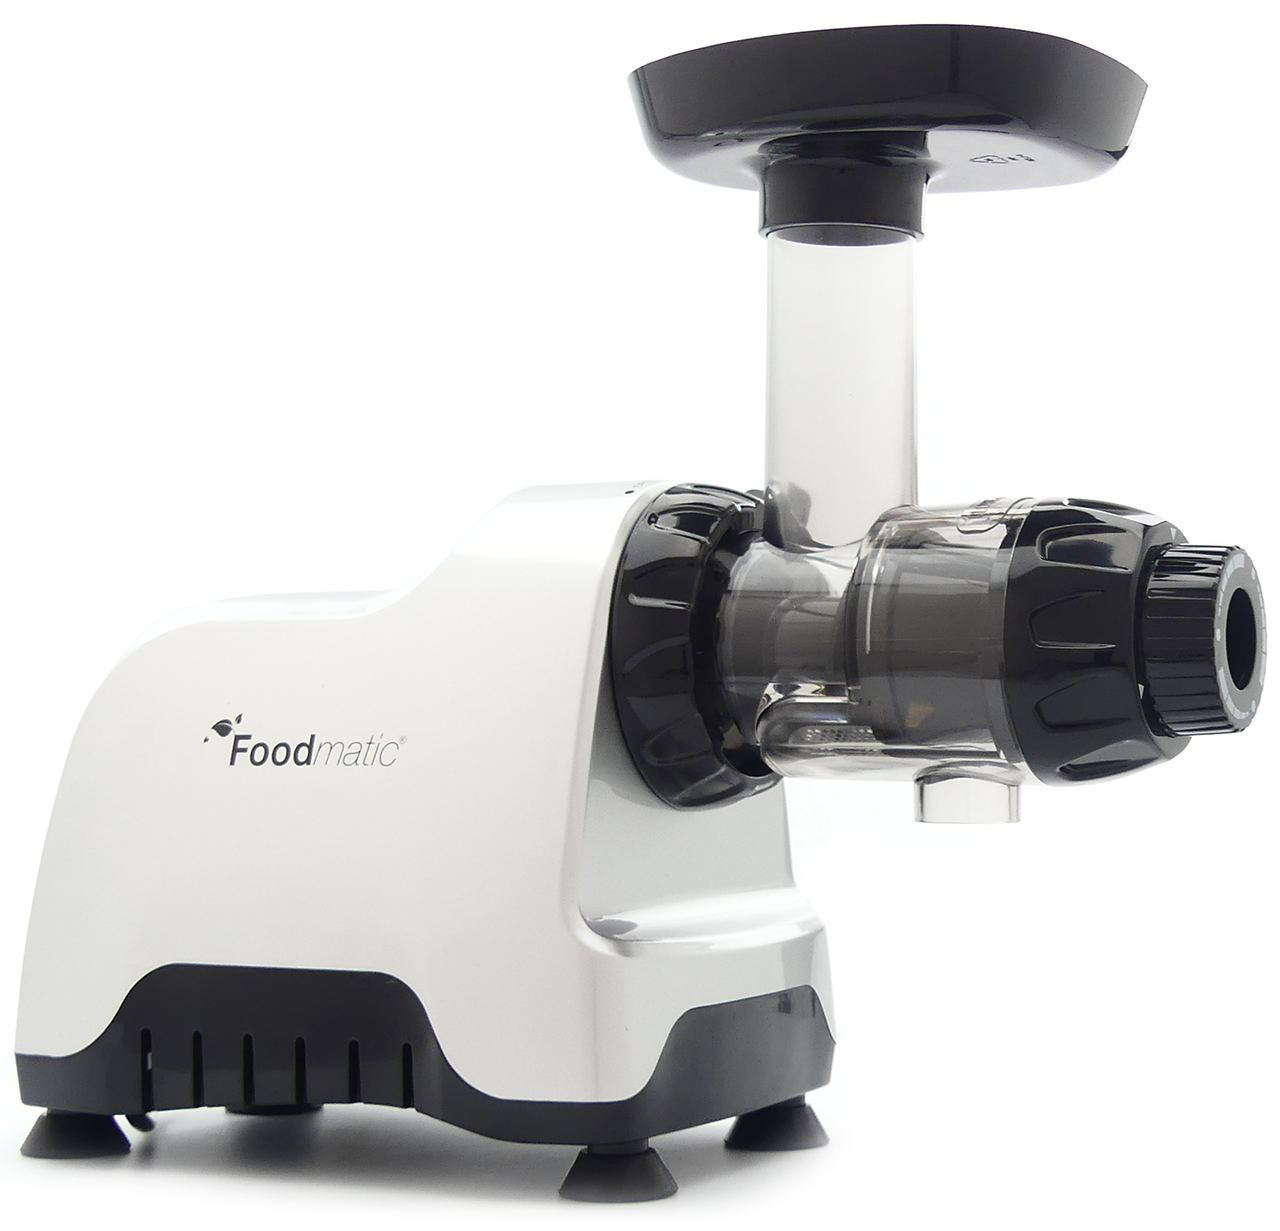 Foodmatic Compact Juicer Juicers UK